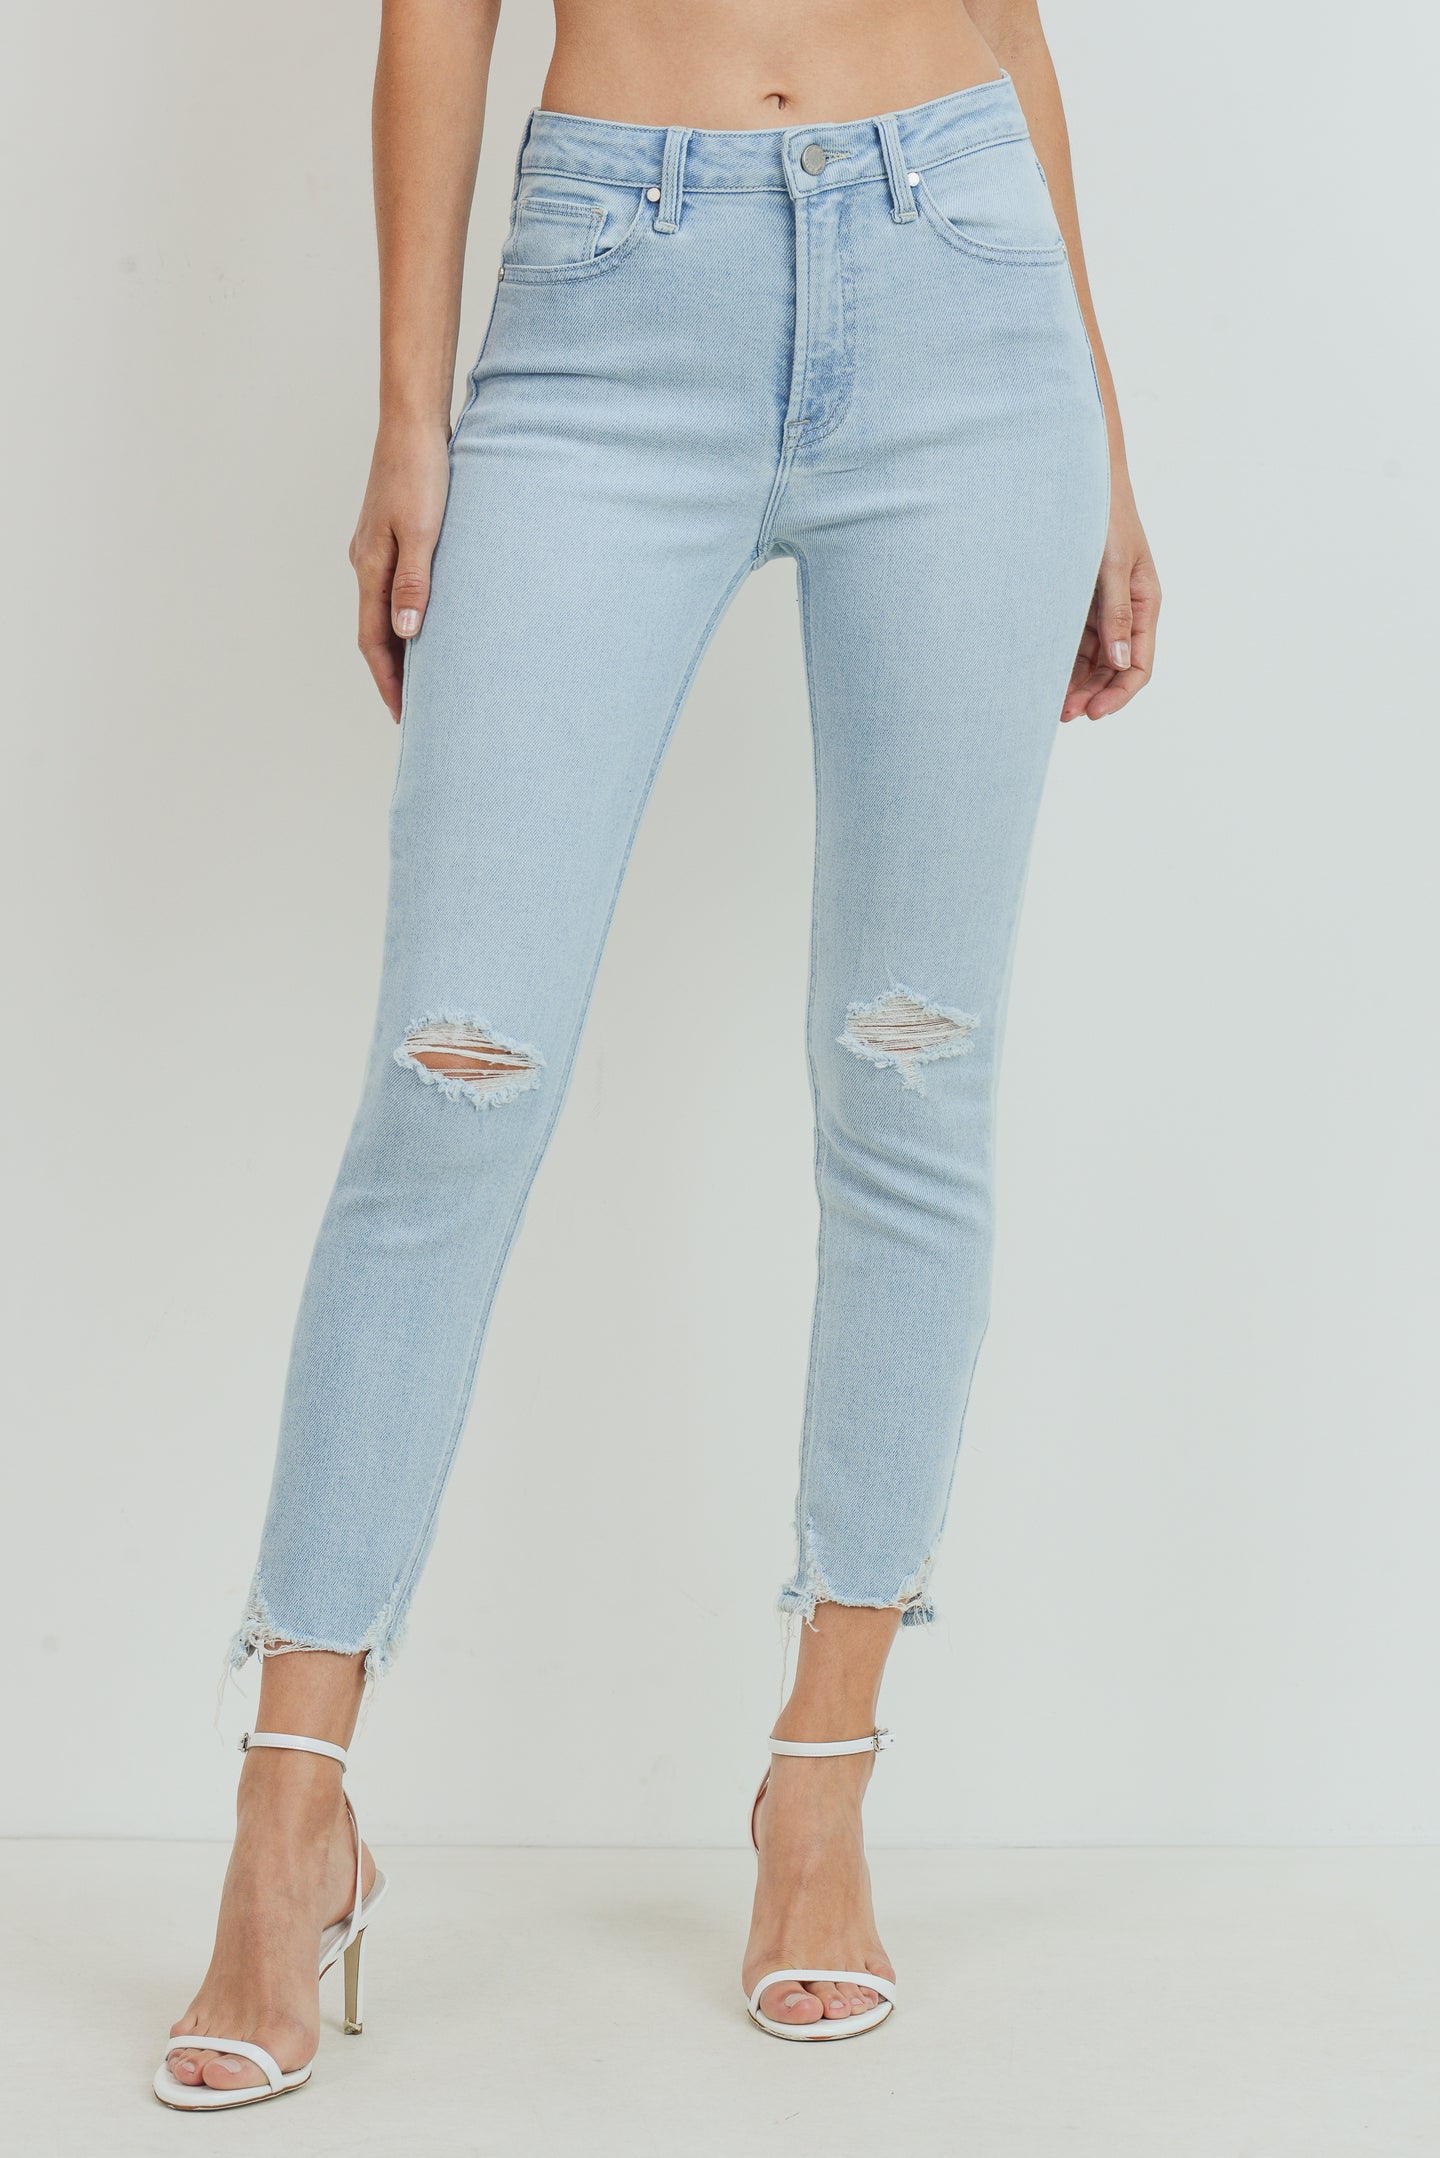 High Rise Distressed Light Wash Skinny